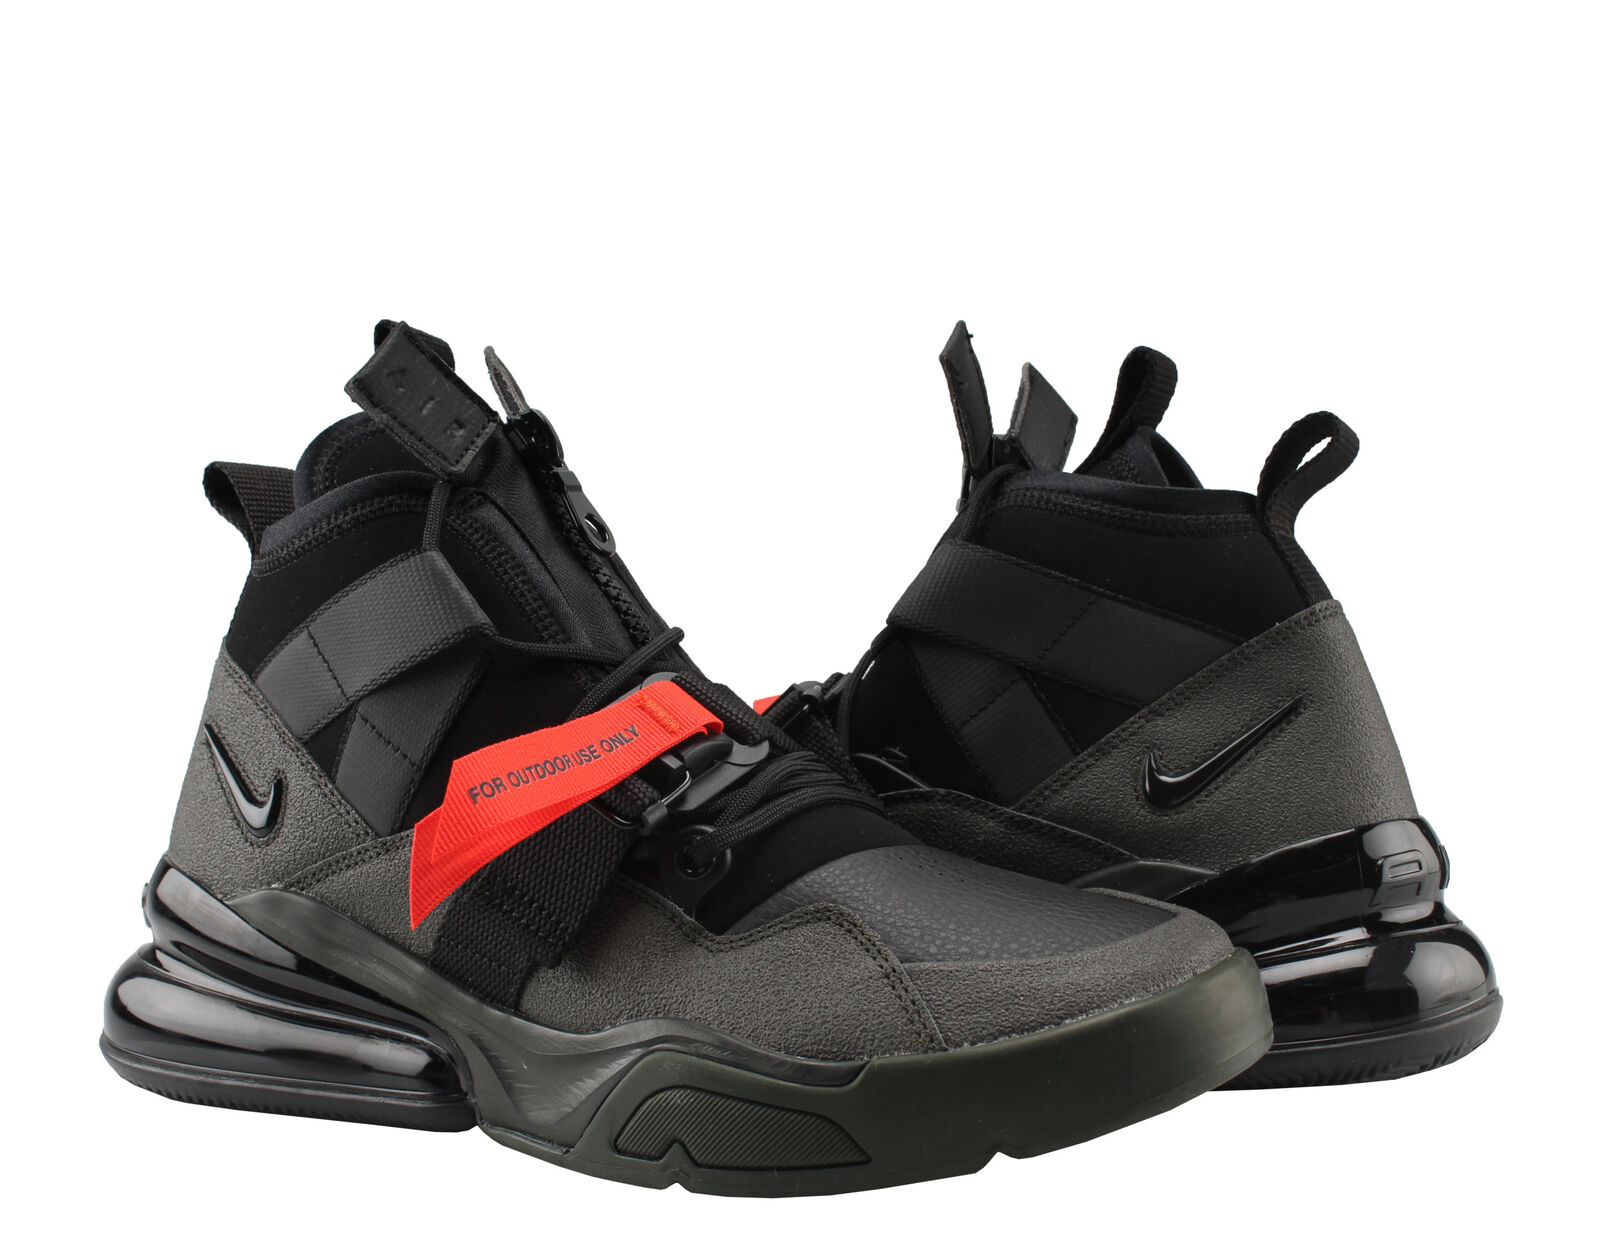 Nike Air Force 270 Utility Sequoia Black-Red Men's Lifestyle shoes AQ0572-300